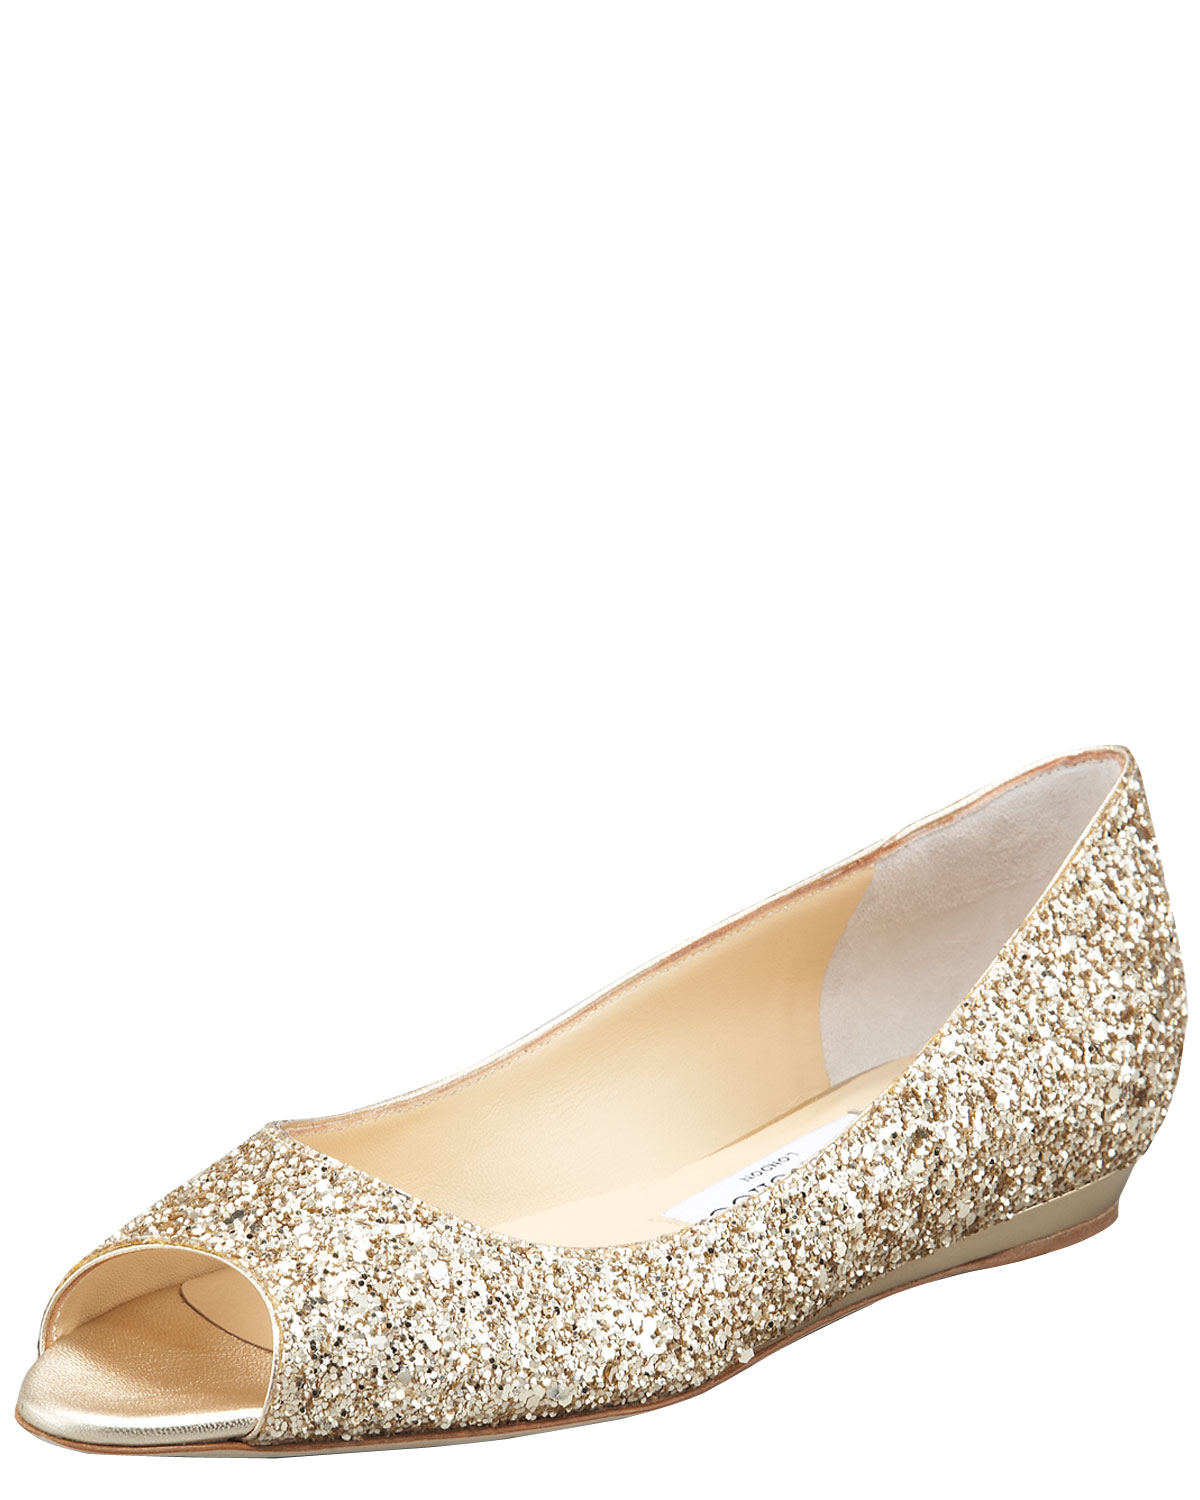 Outlet Fashionable Silvia faux pearl-embellished leather flats Jimmy Choo London Sale Online Store 5aB0Rl7